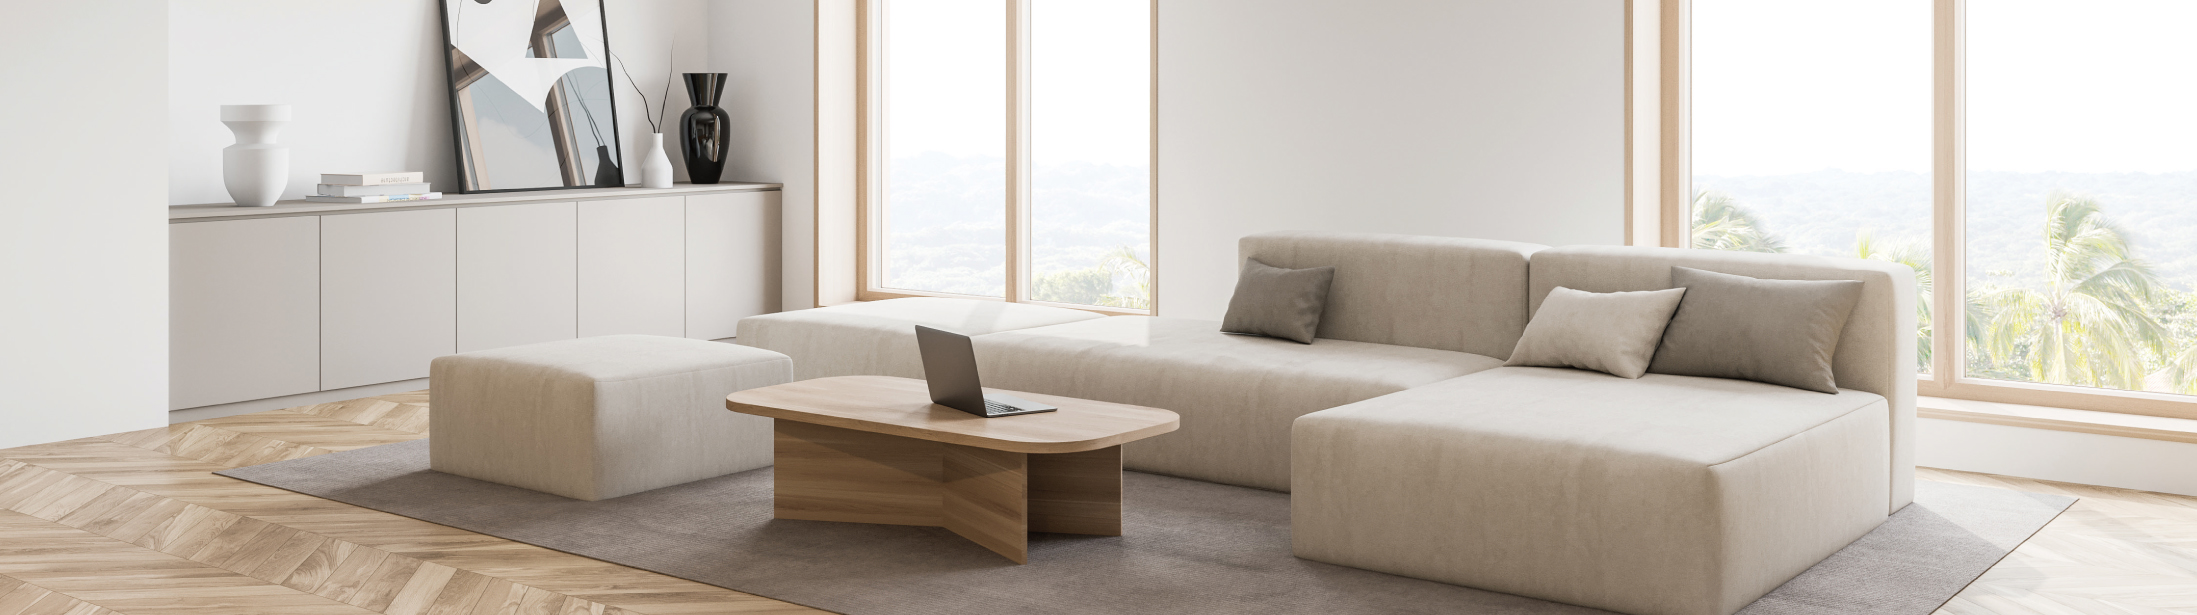 Corner of modern living room with white walls, wooden floor, white sofa and coffee table with laptop. 3d rendering